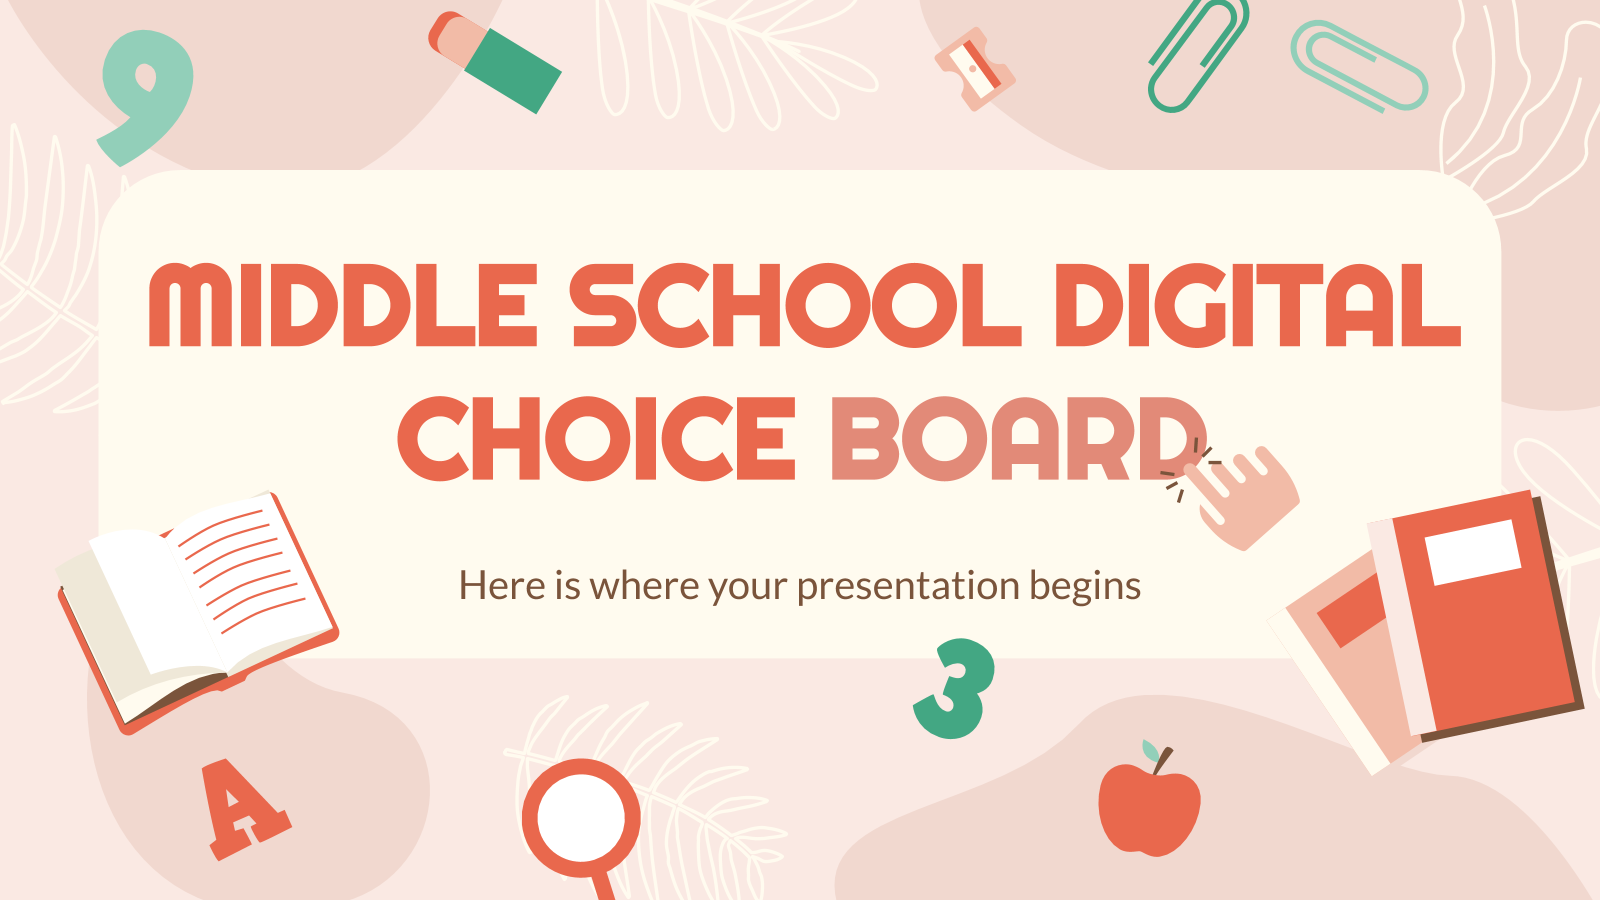 Middle School Digital Choice Board presentation template